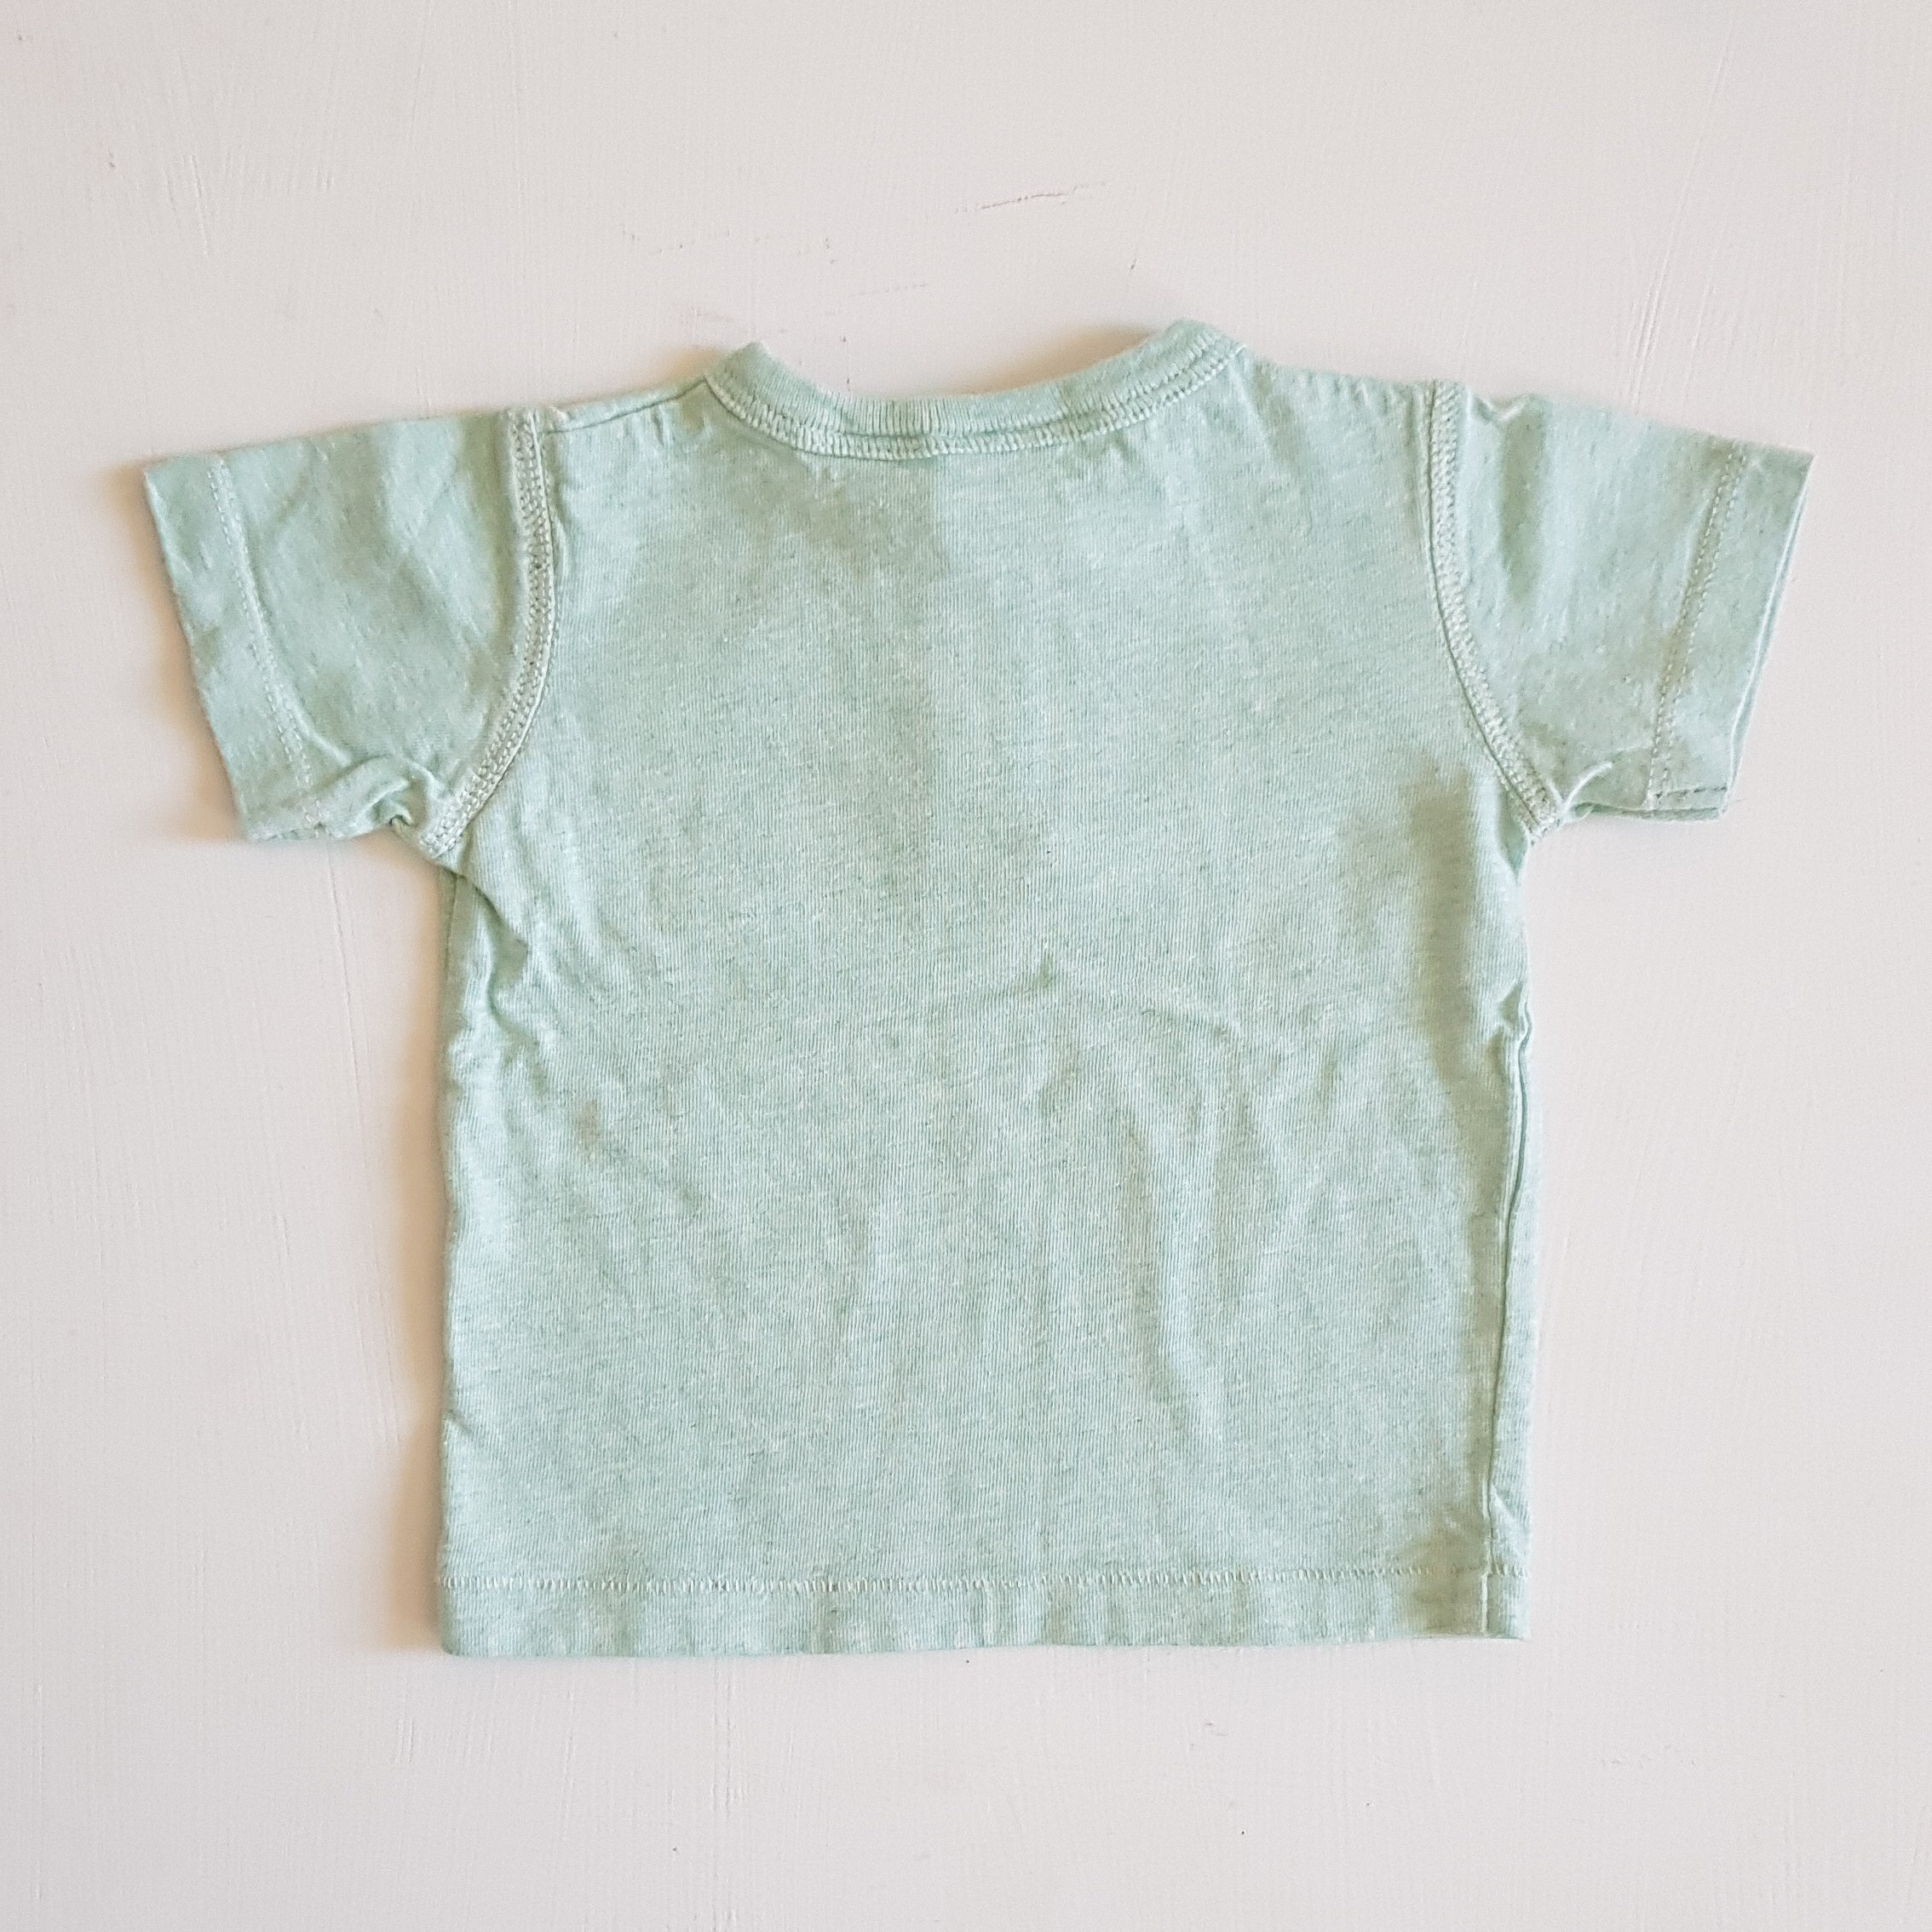 THRIFT Seed Heritage Baby - Pale Green shirt Size 000